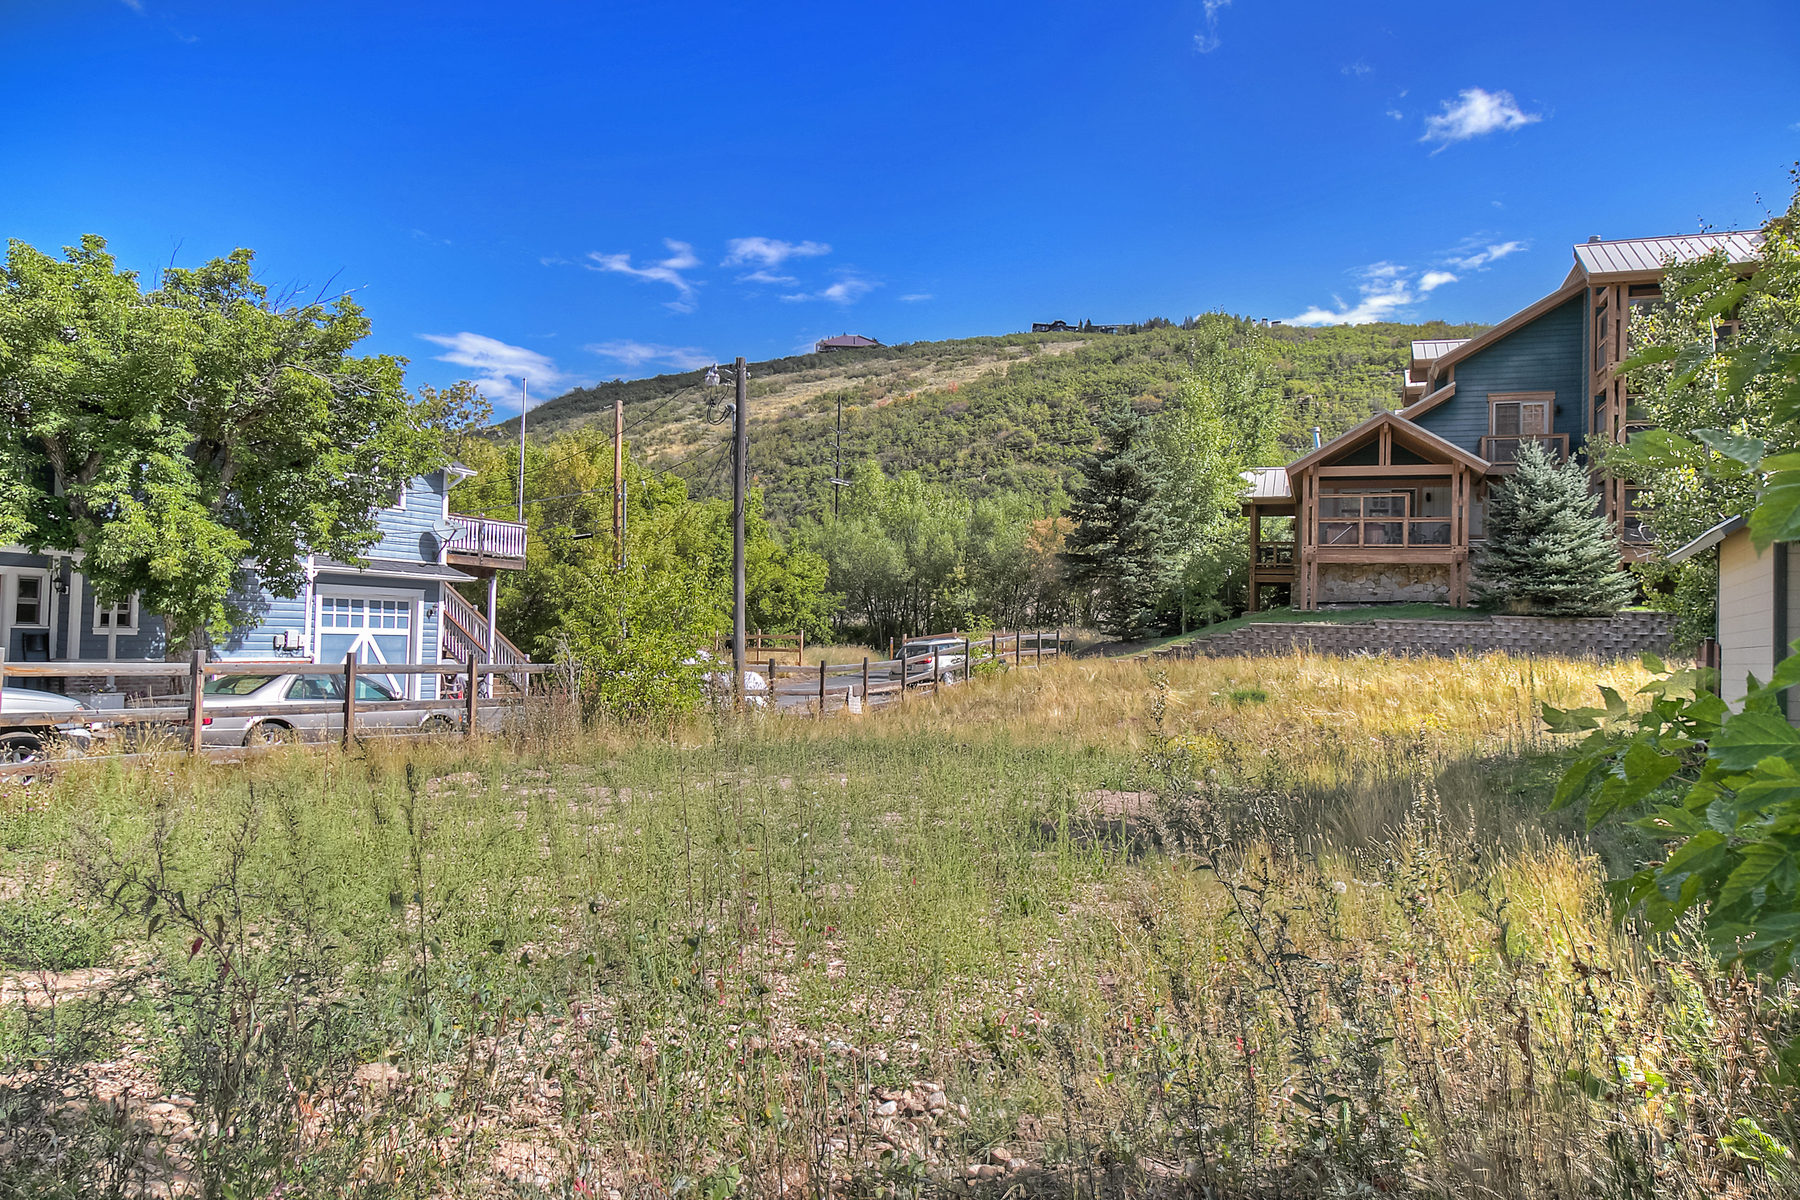 Land for Sale at 3 Lot Development Opportunity 1064 Park Ave Lot 15 & Lot 16 Park City, Utah, 84060 United States